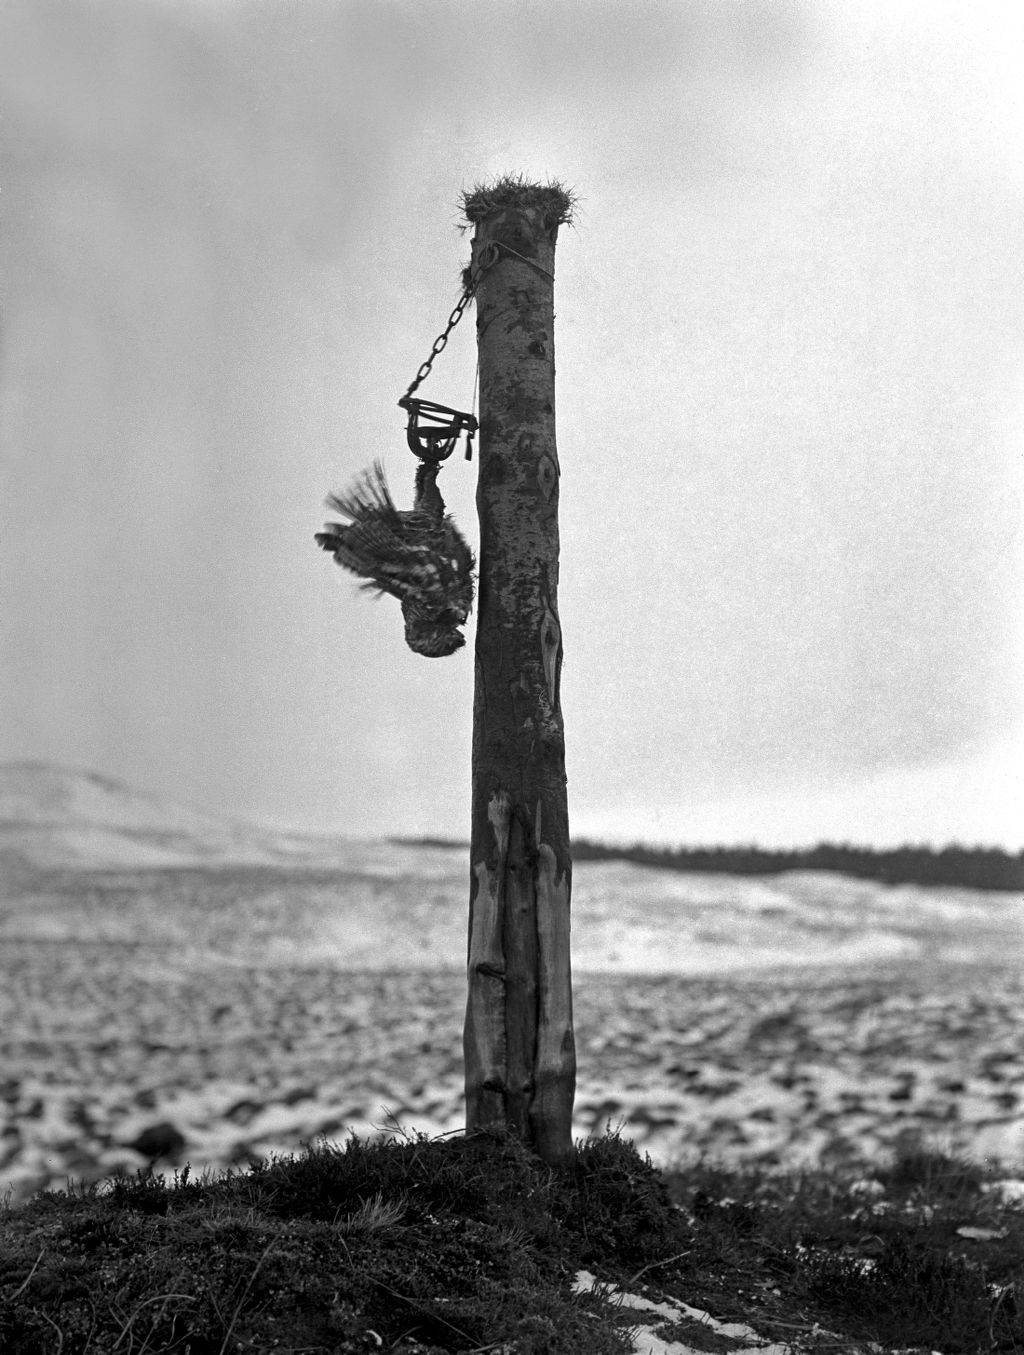 Pole trap, Loch Tulla.